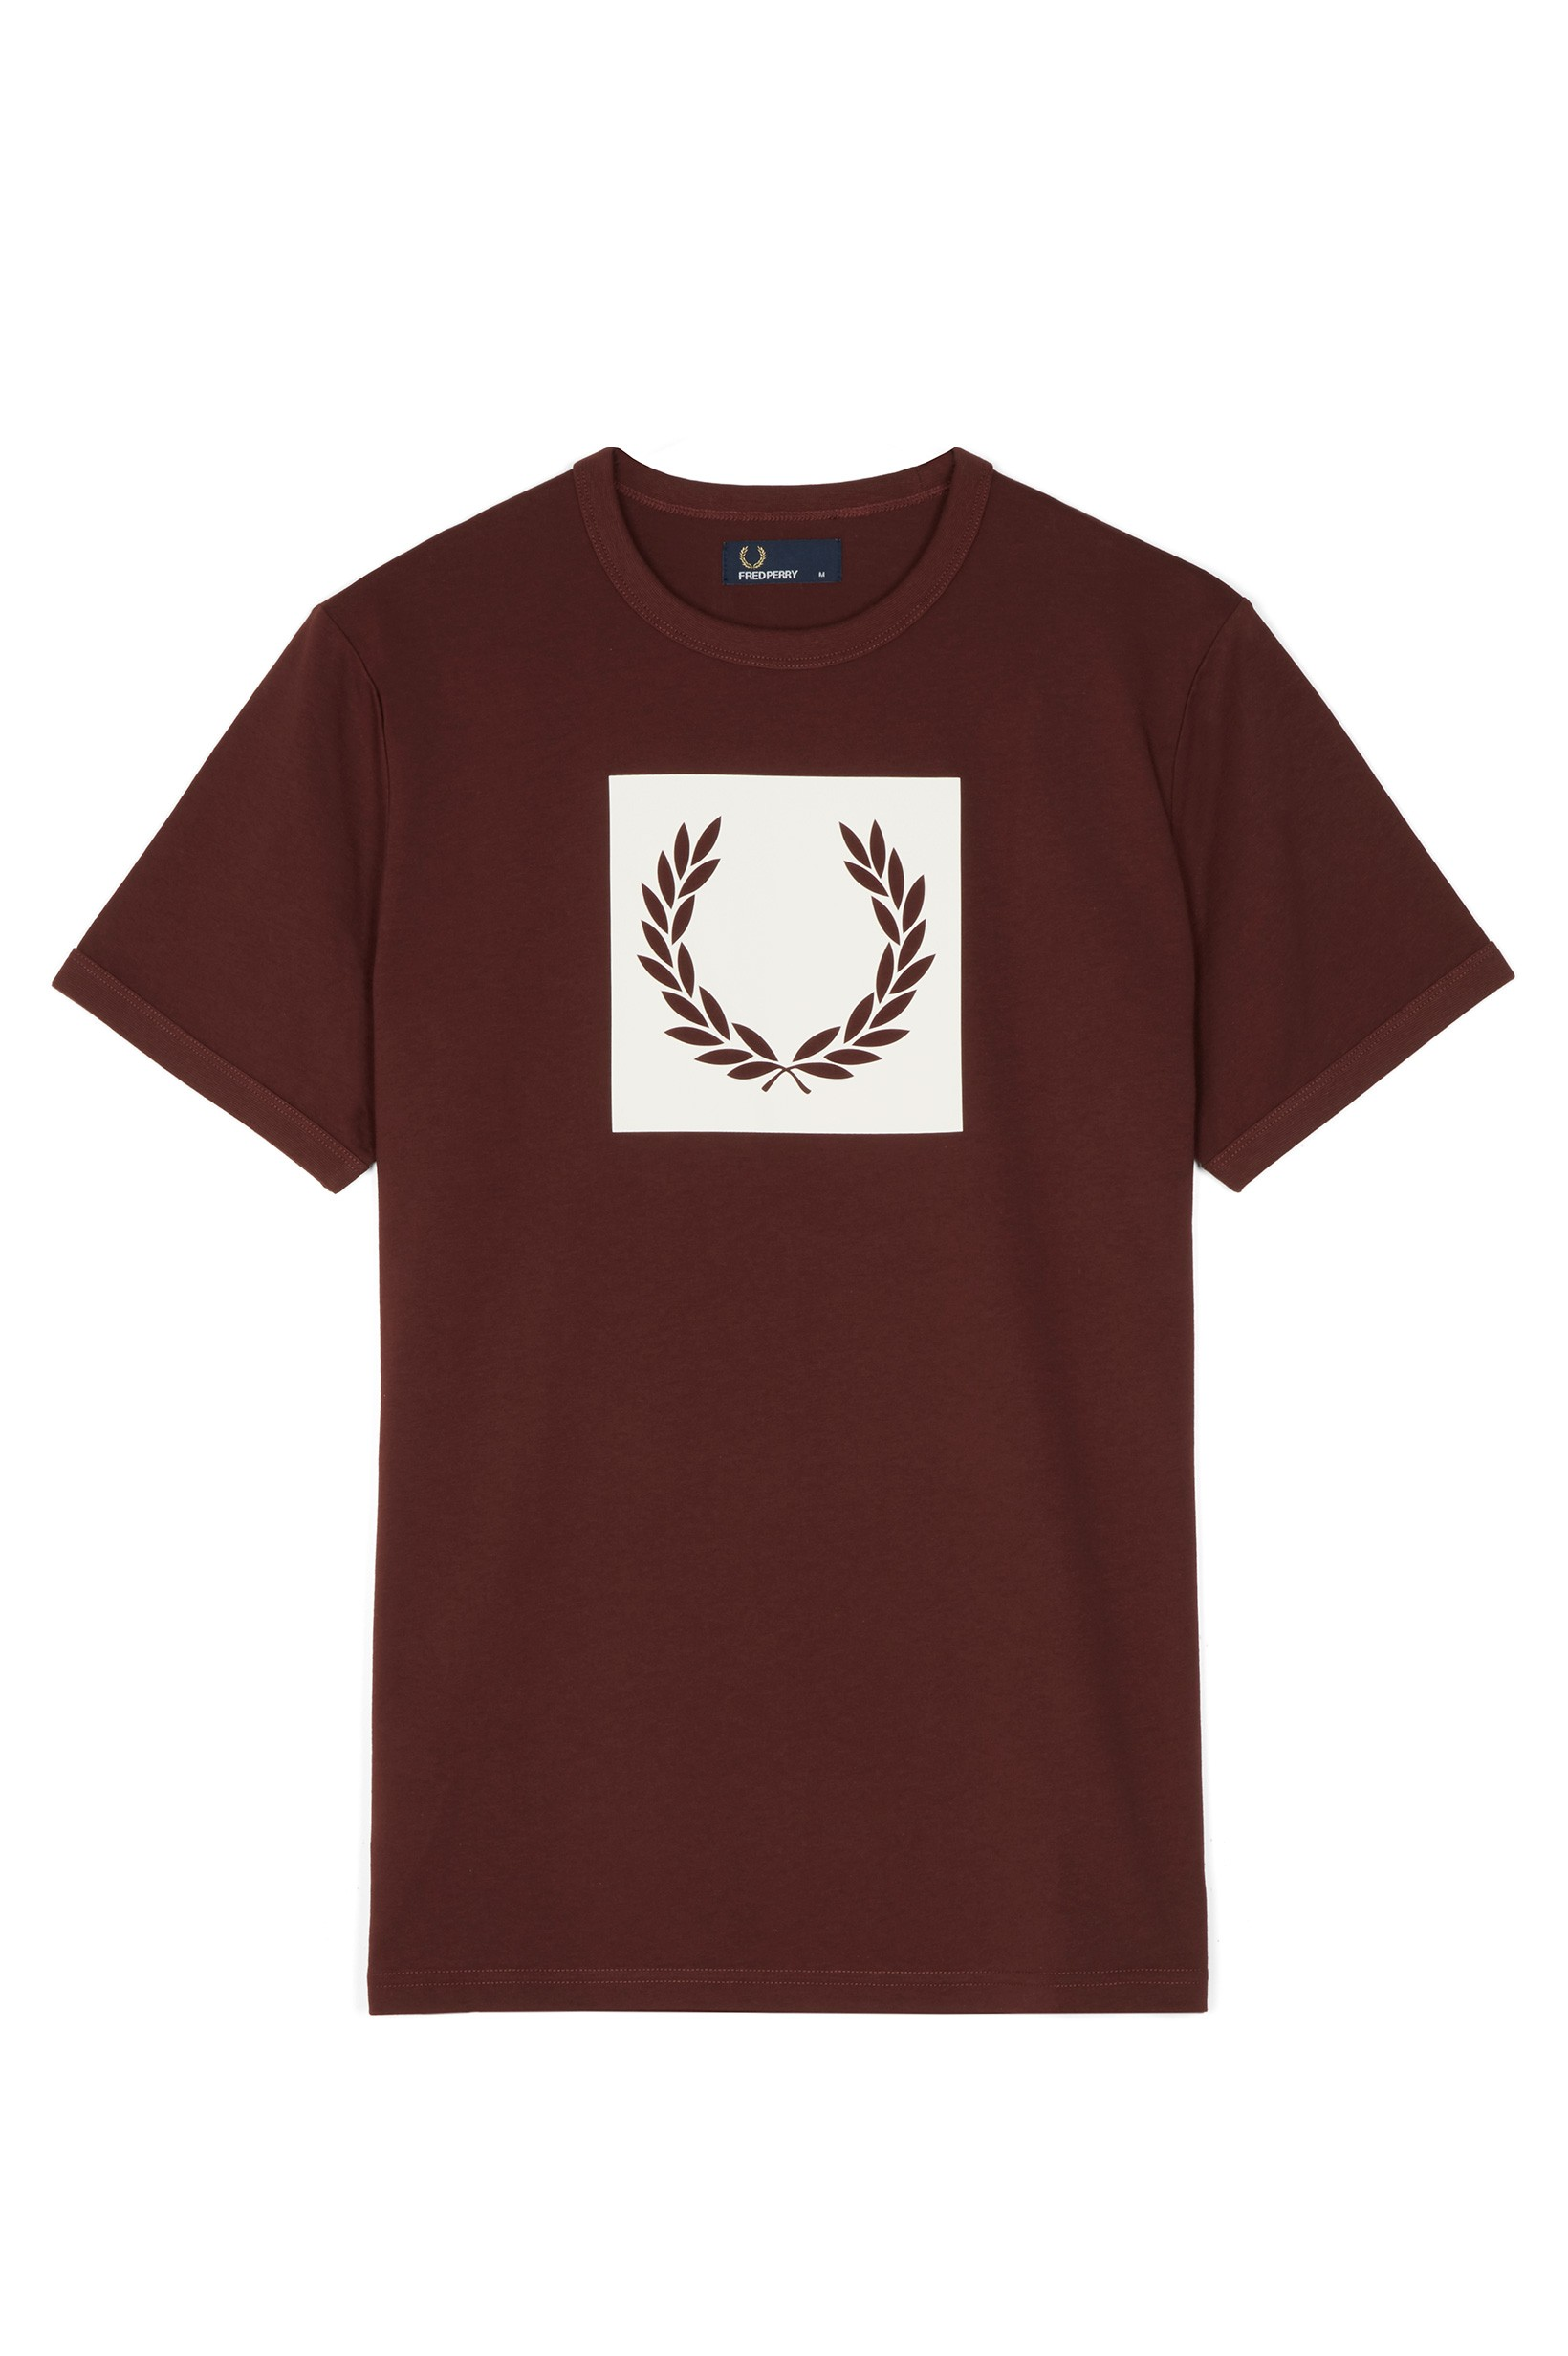 Fred Perry Stadium Red Printed Laurel Wreath T-Shirt